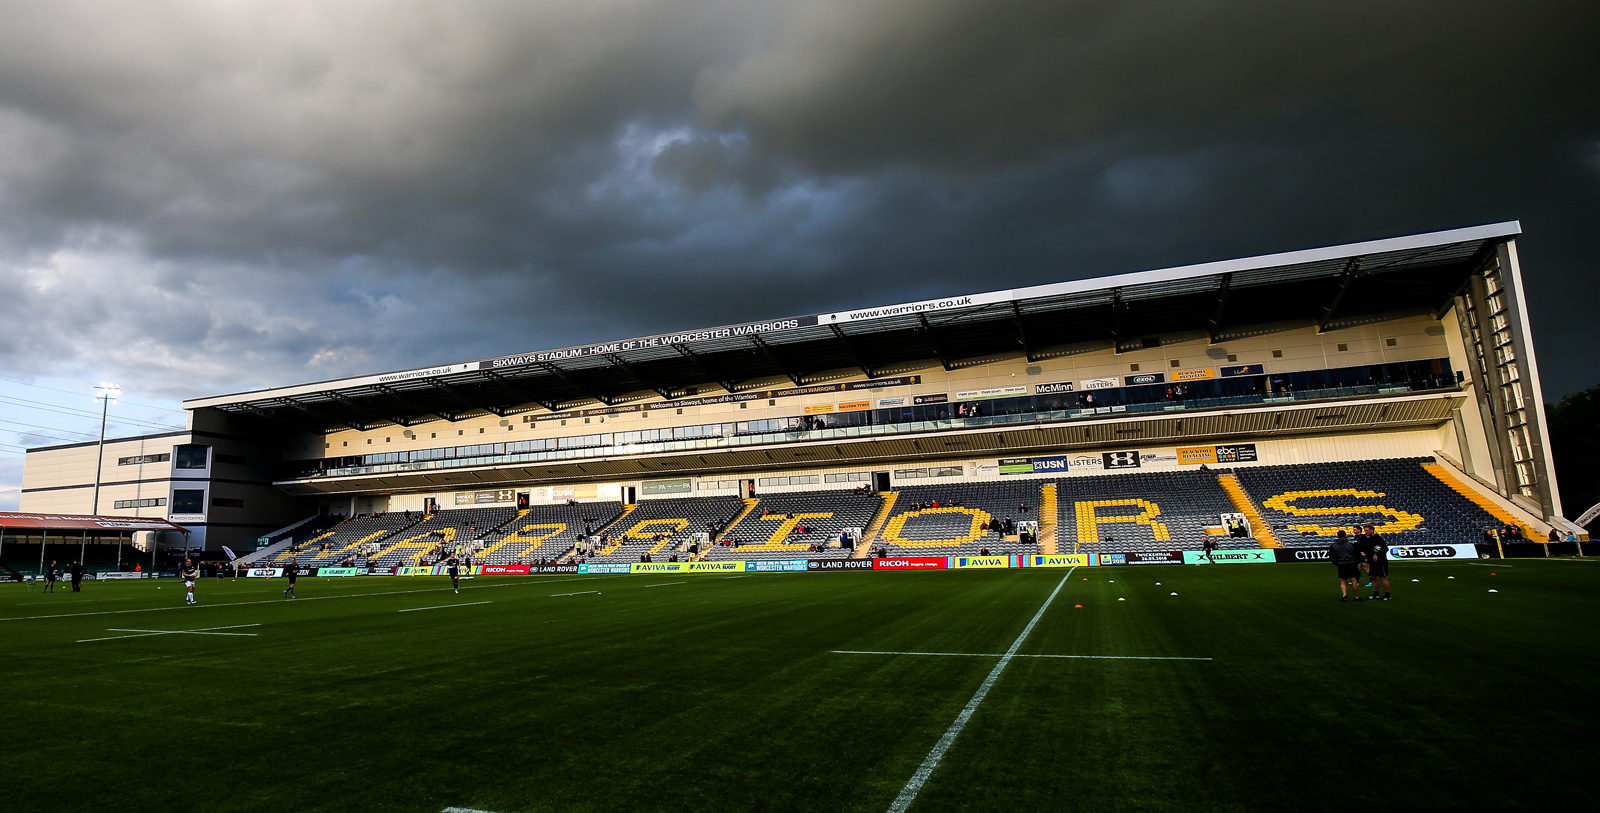 356a28feacf 2018/19 Gallagher Premiership Rugby fixtures – Worcester Warriors